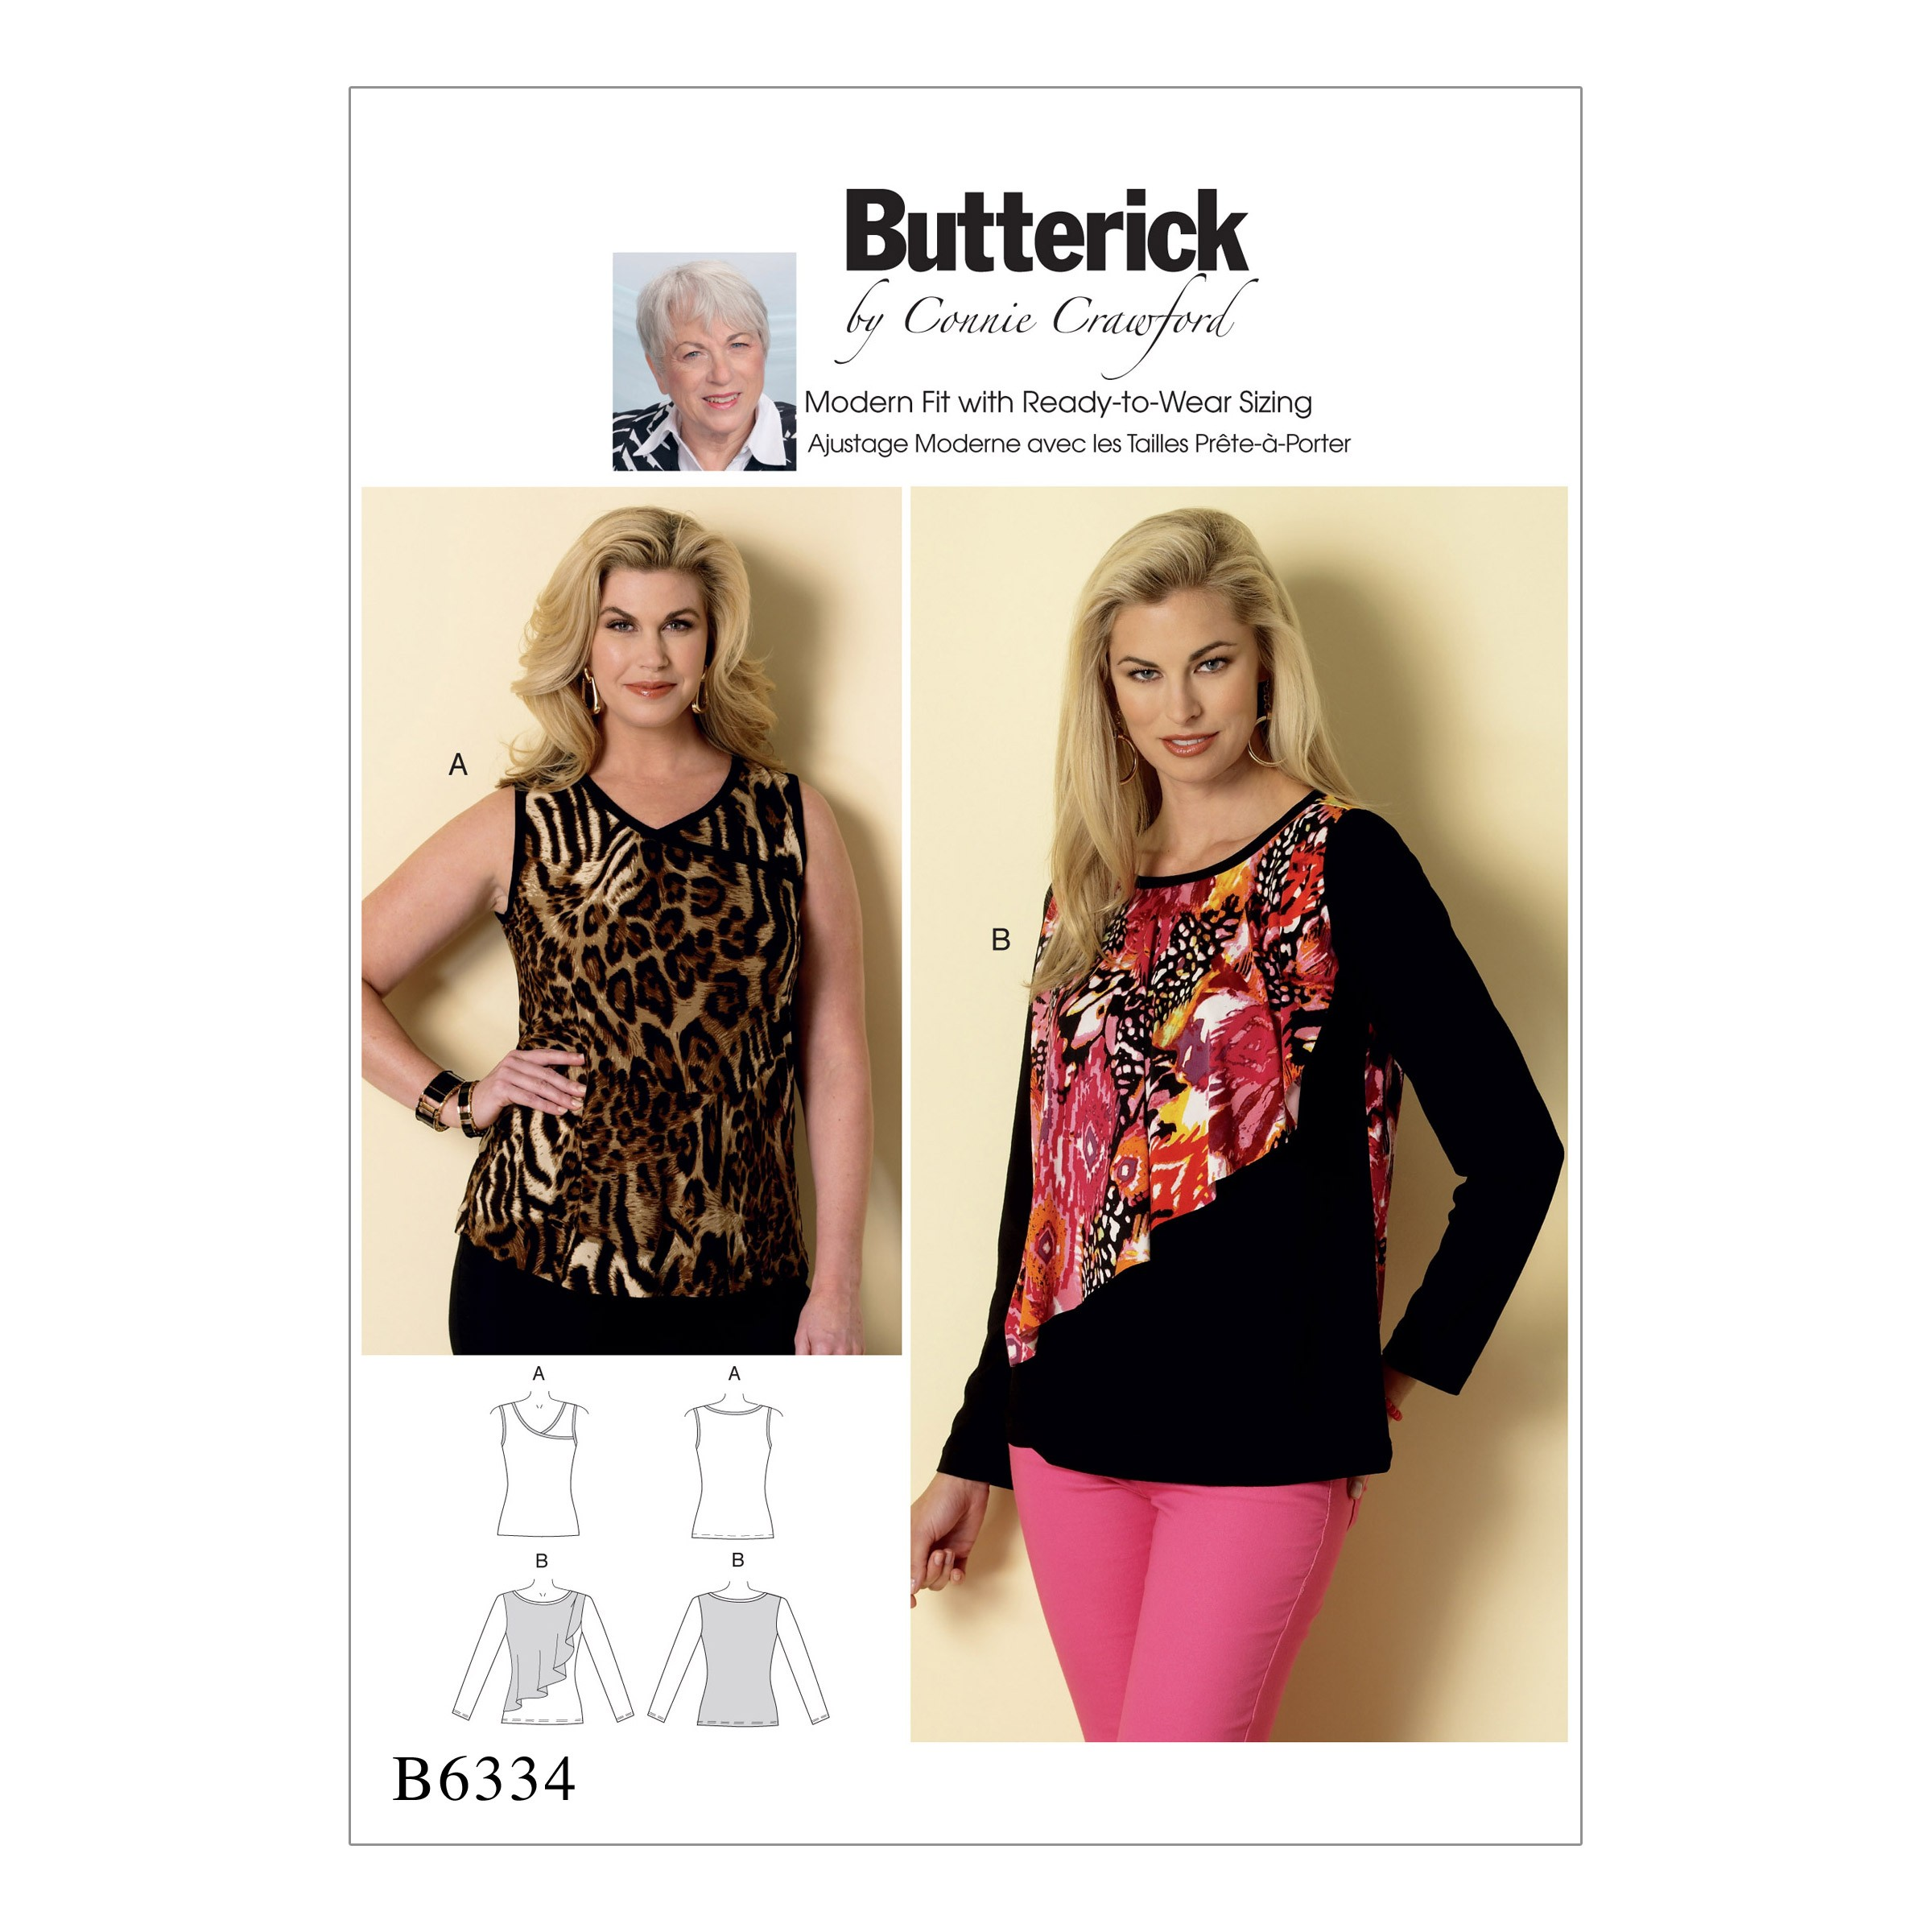 Butterick Sewing Pattern 6334 Misses' Sleeveless Flounce Overlay Tops